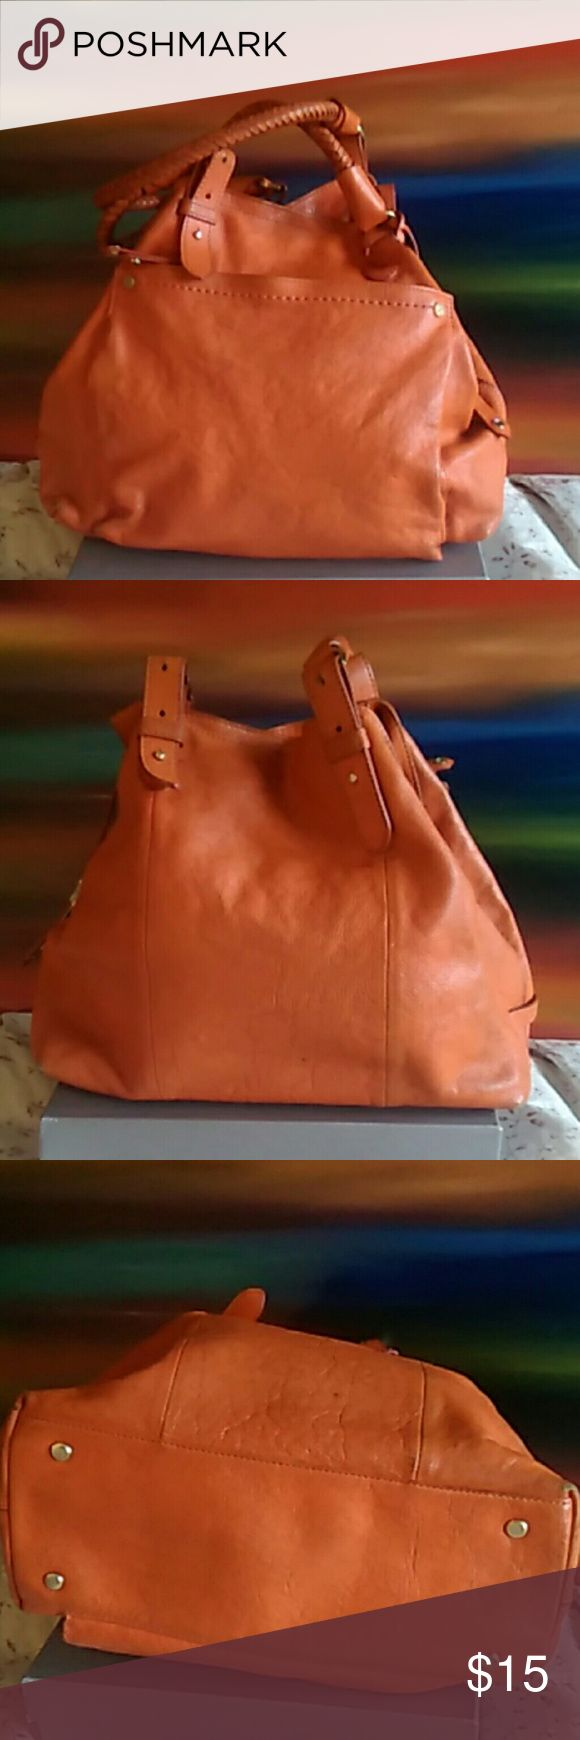 Cole Haan Leather Satchel Orange leather shoulder bag, braided leather handles, handles are adjustable w/ post/ hole . rough heavy leather w/ orange stitching. Handles & bottom corners of bag are are VERY worn! Marks throughout bag. A good cleaning should definitely help. Gold hardware. Zip closure pocket @ front exterior. Tan multi square design interior, zip closure pocket @ back interior & cell phone pockets @ back interior, small ink marks on cell phone pocket interior. Two magnetic top…